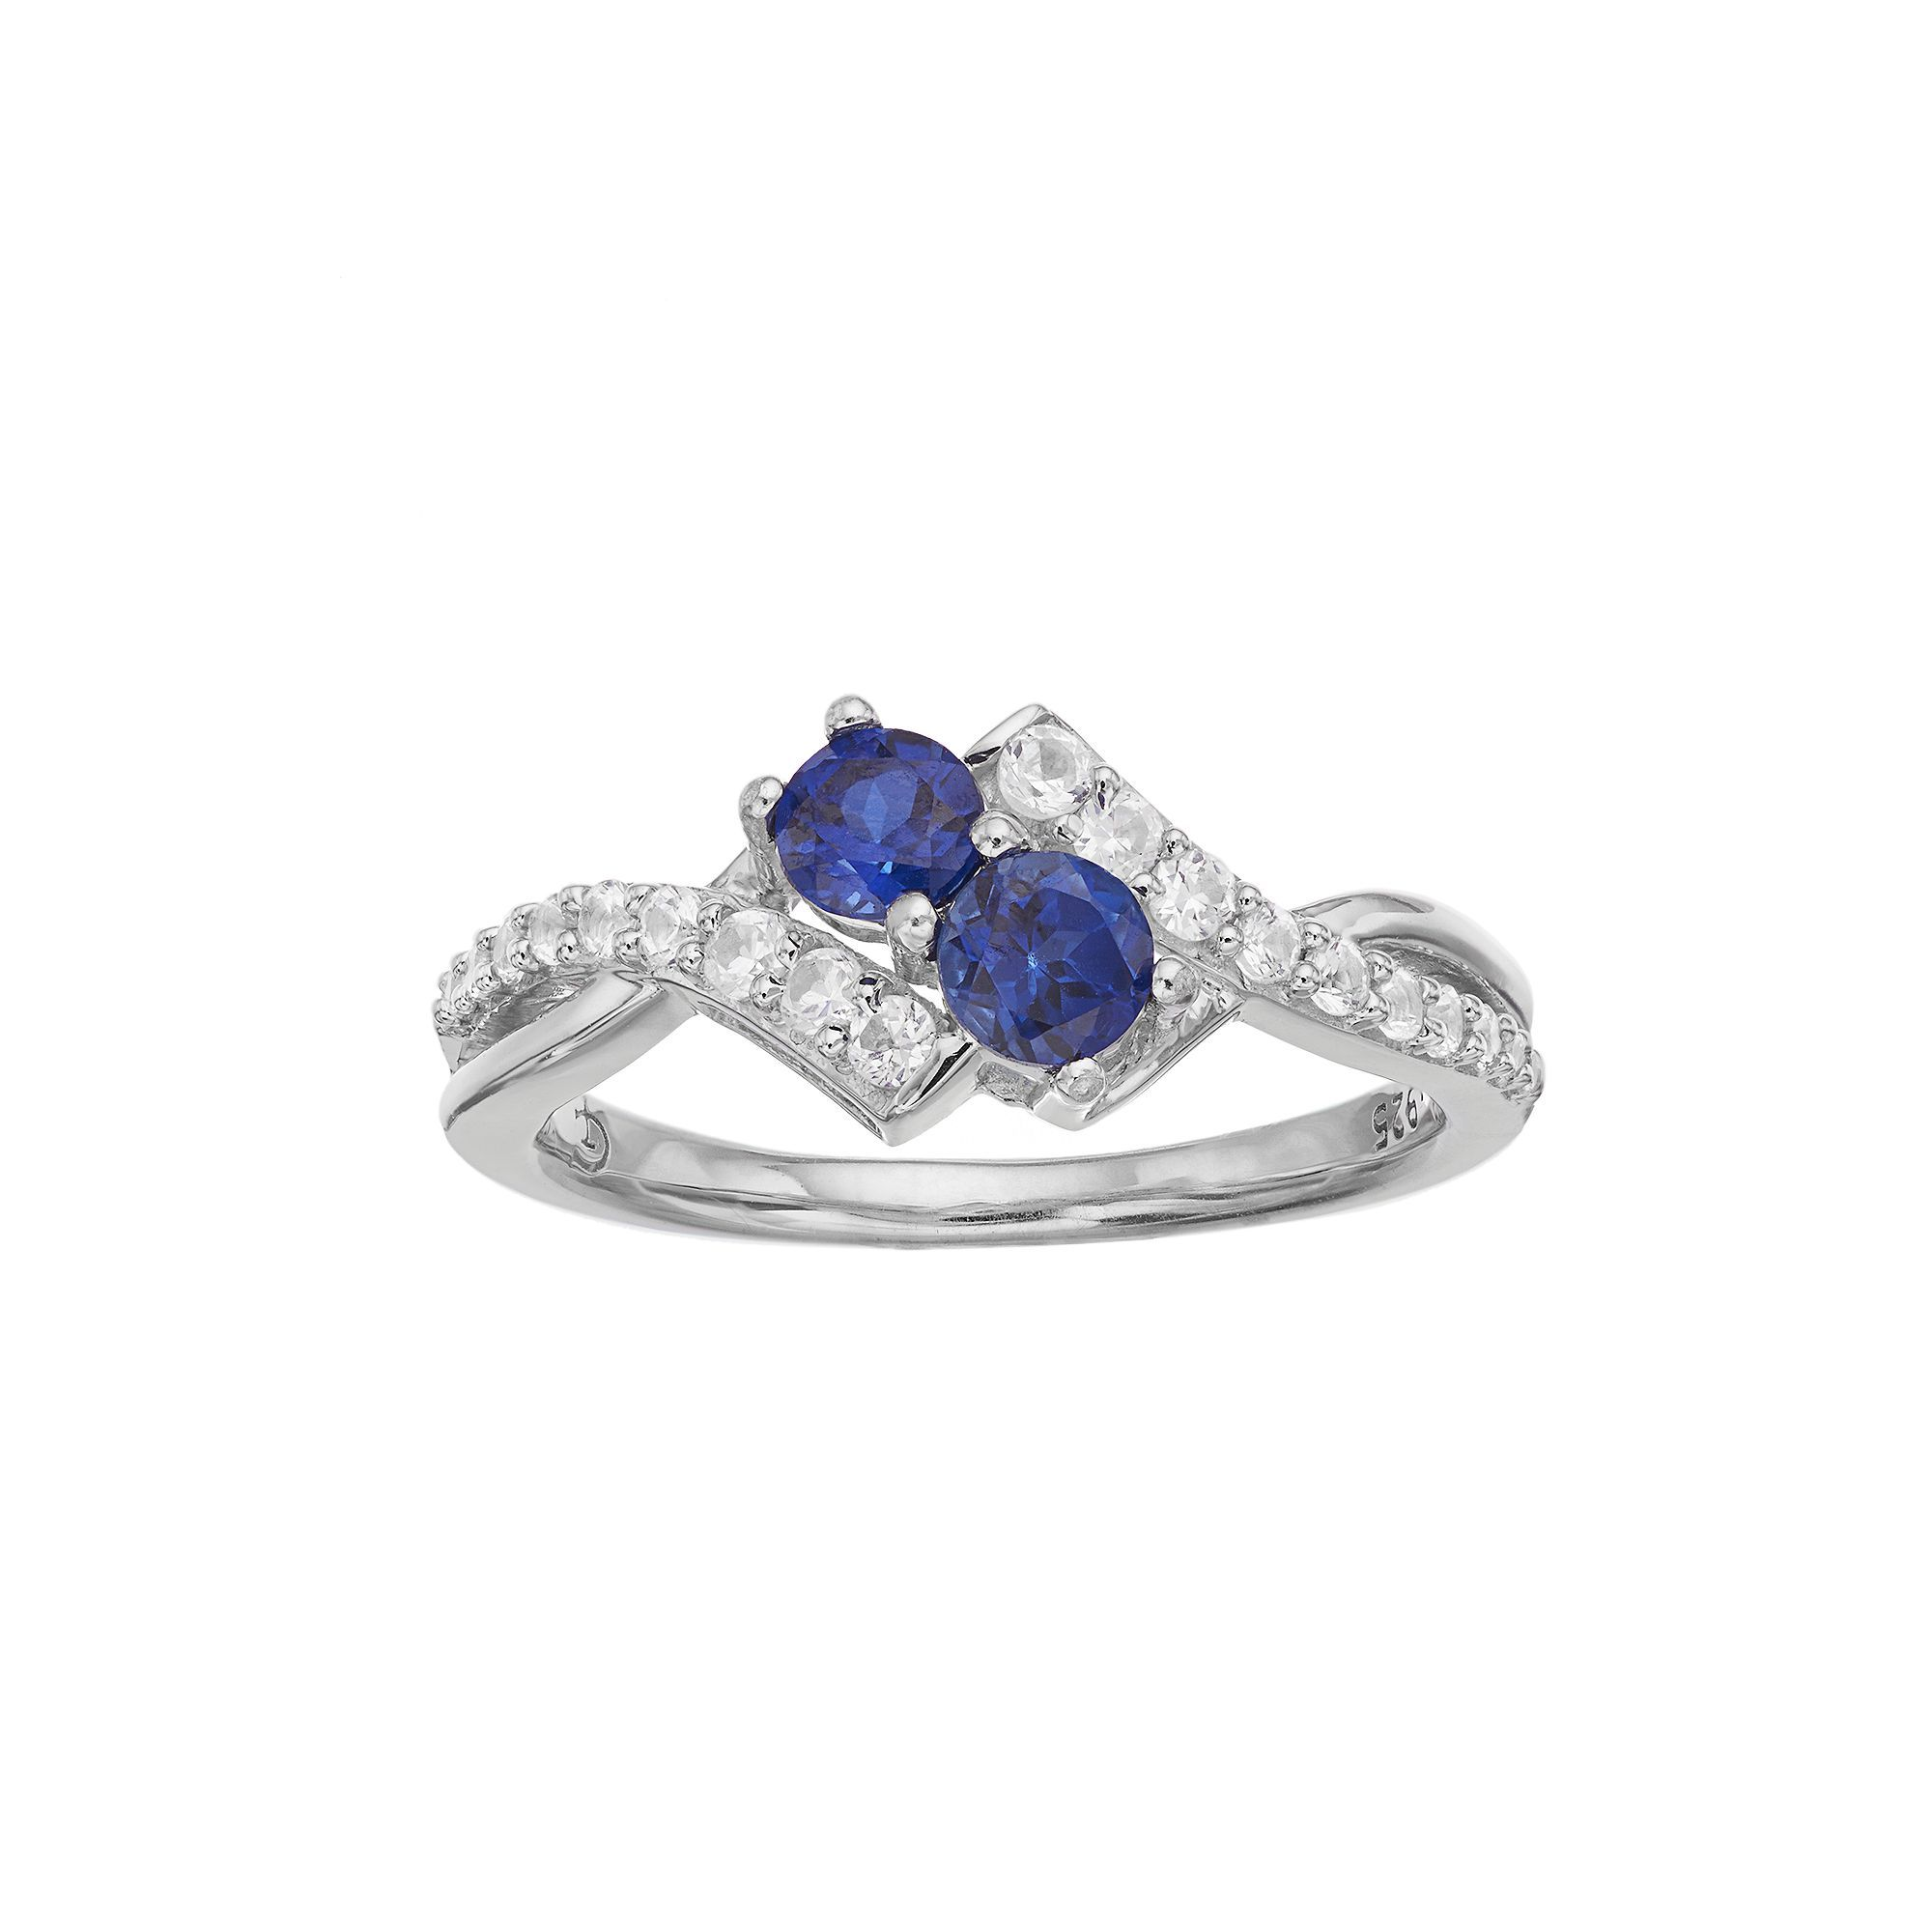 ring created engagement s rings t carat kohl lab w sapphire pin white in diamond and gold